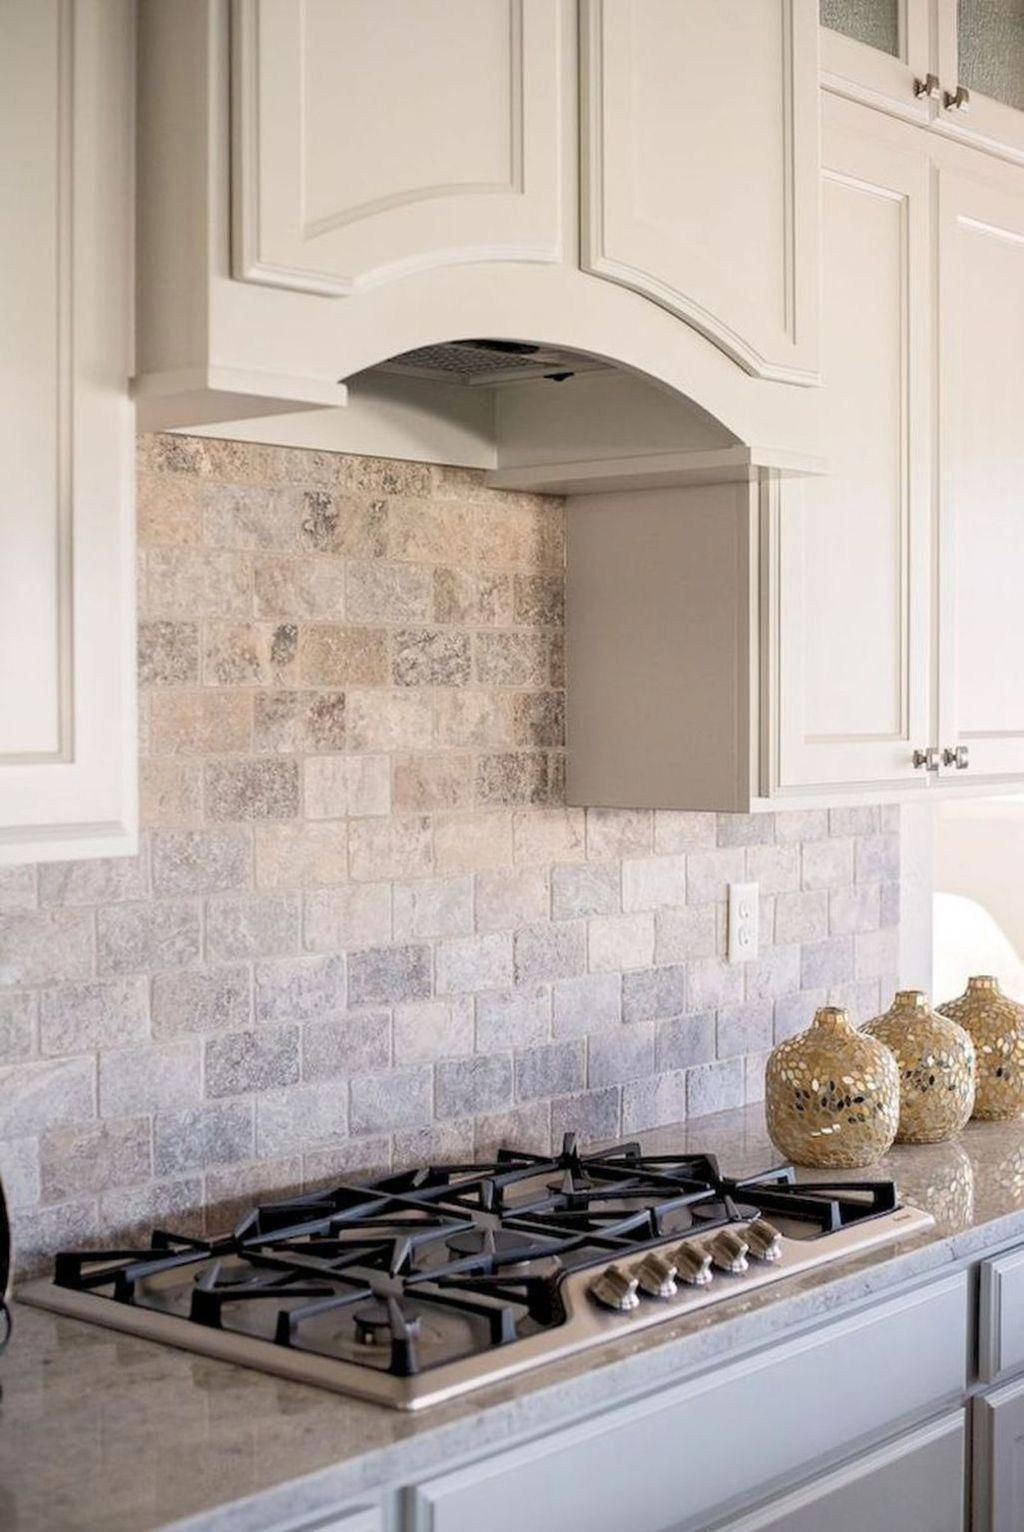 Creative and innovative kitchen backsplash decor ideas